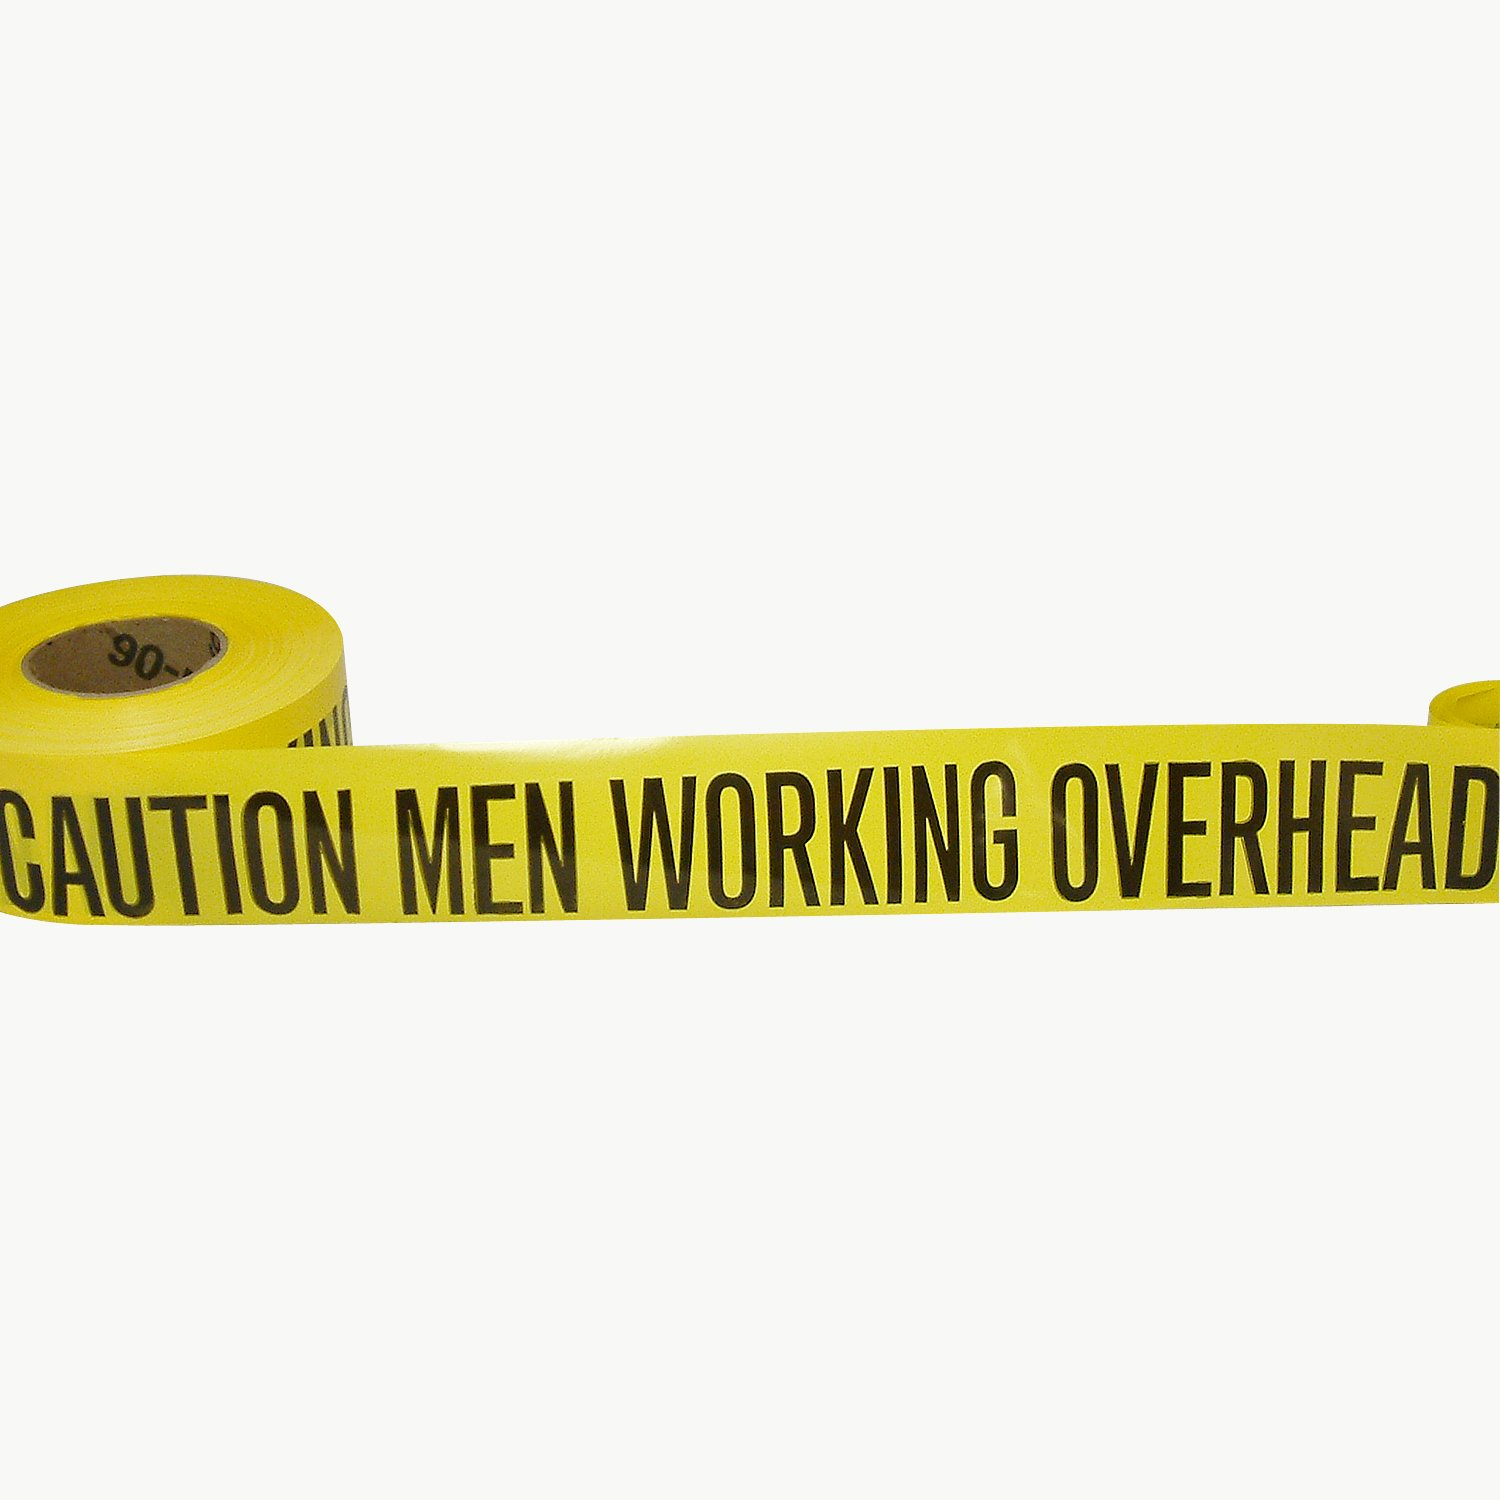 JVCC BR-1 Barricade Tape: 3 in. x 1000 ft. (Yellow with Black ''CAUTION MEN WORKING OVERHEAD'' printing)